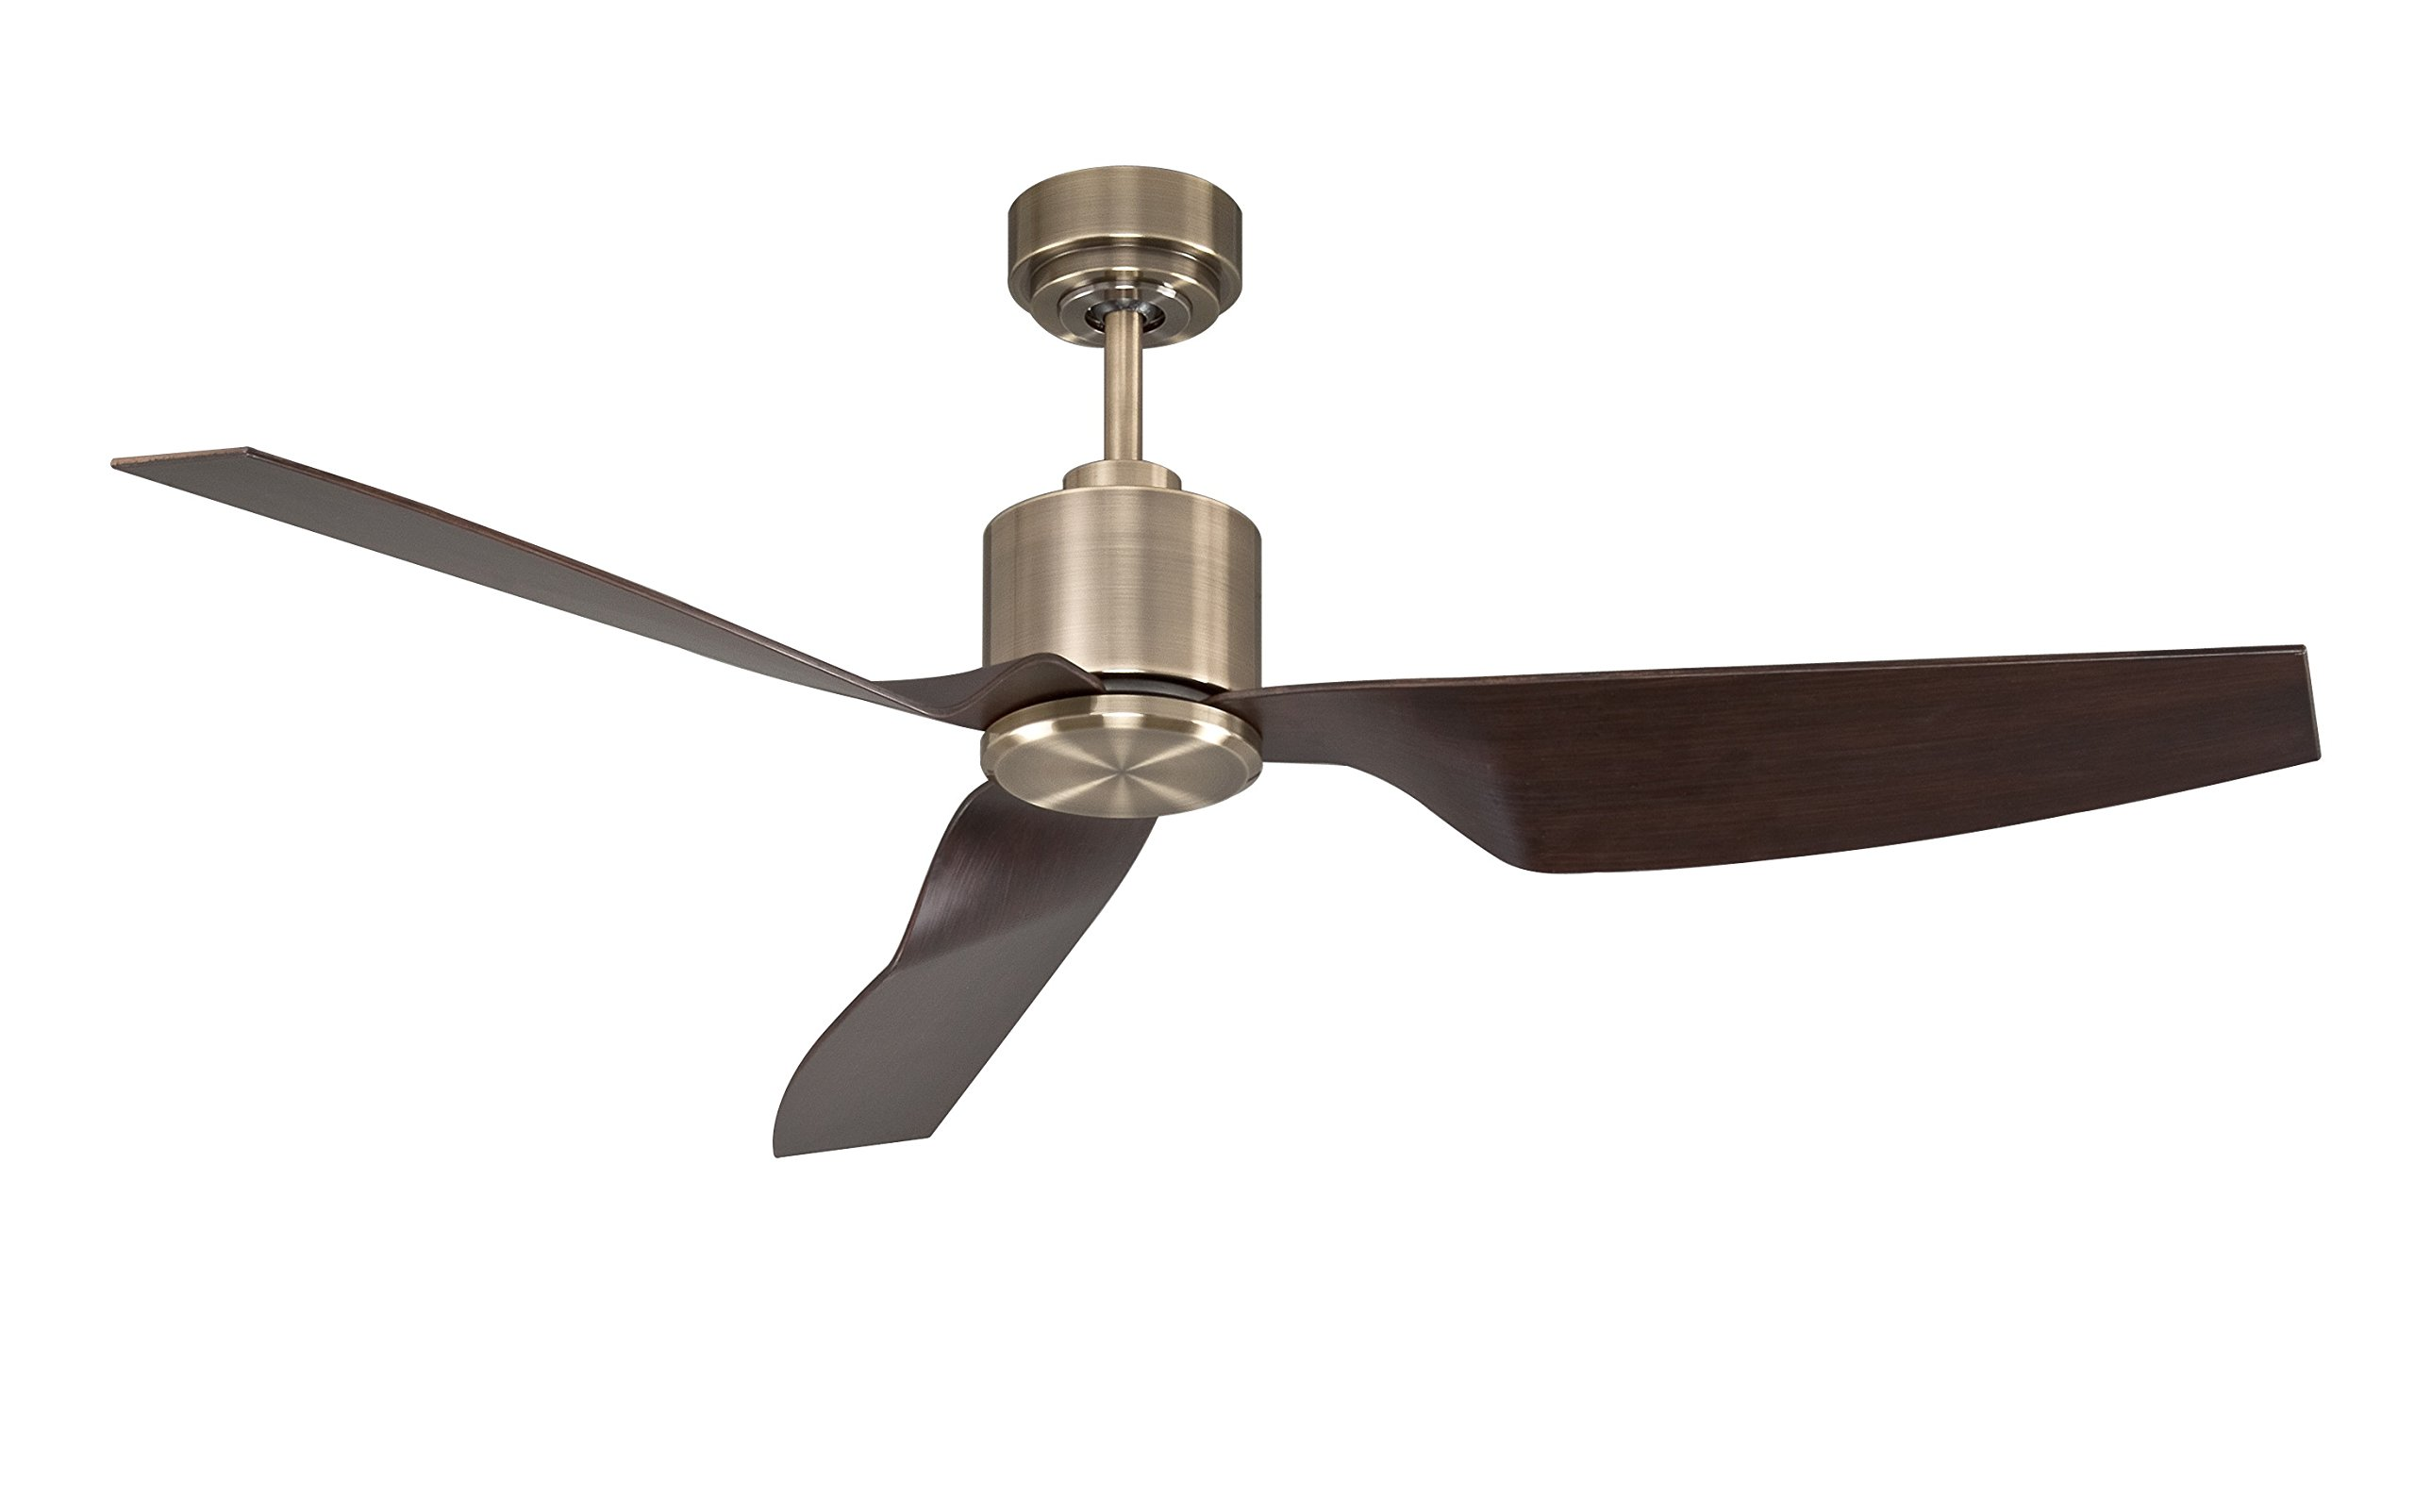 Lucci Air 210526010 Climate II 3 Blade Indoor DC Motor Ceiling Fan with Remote Control, 50 Inch, Antique Brass with Walnut